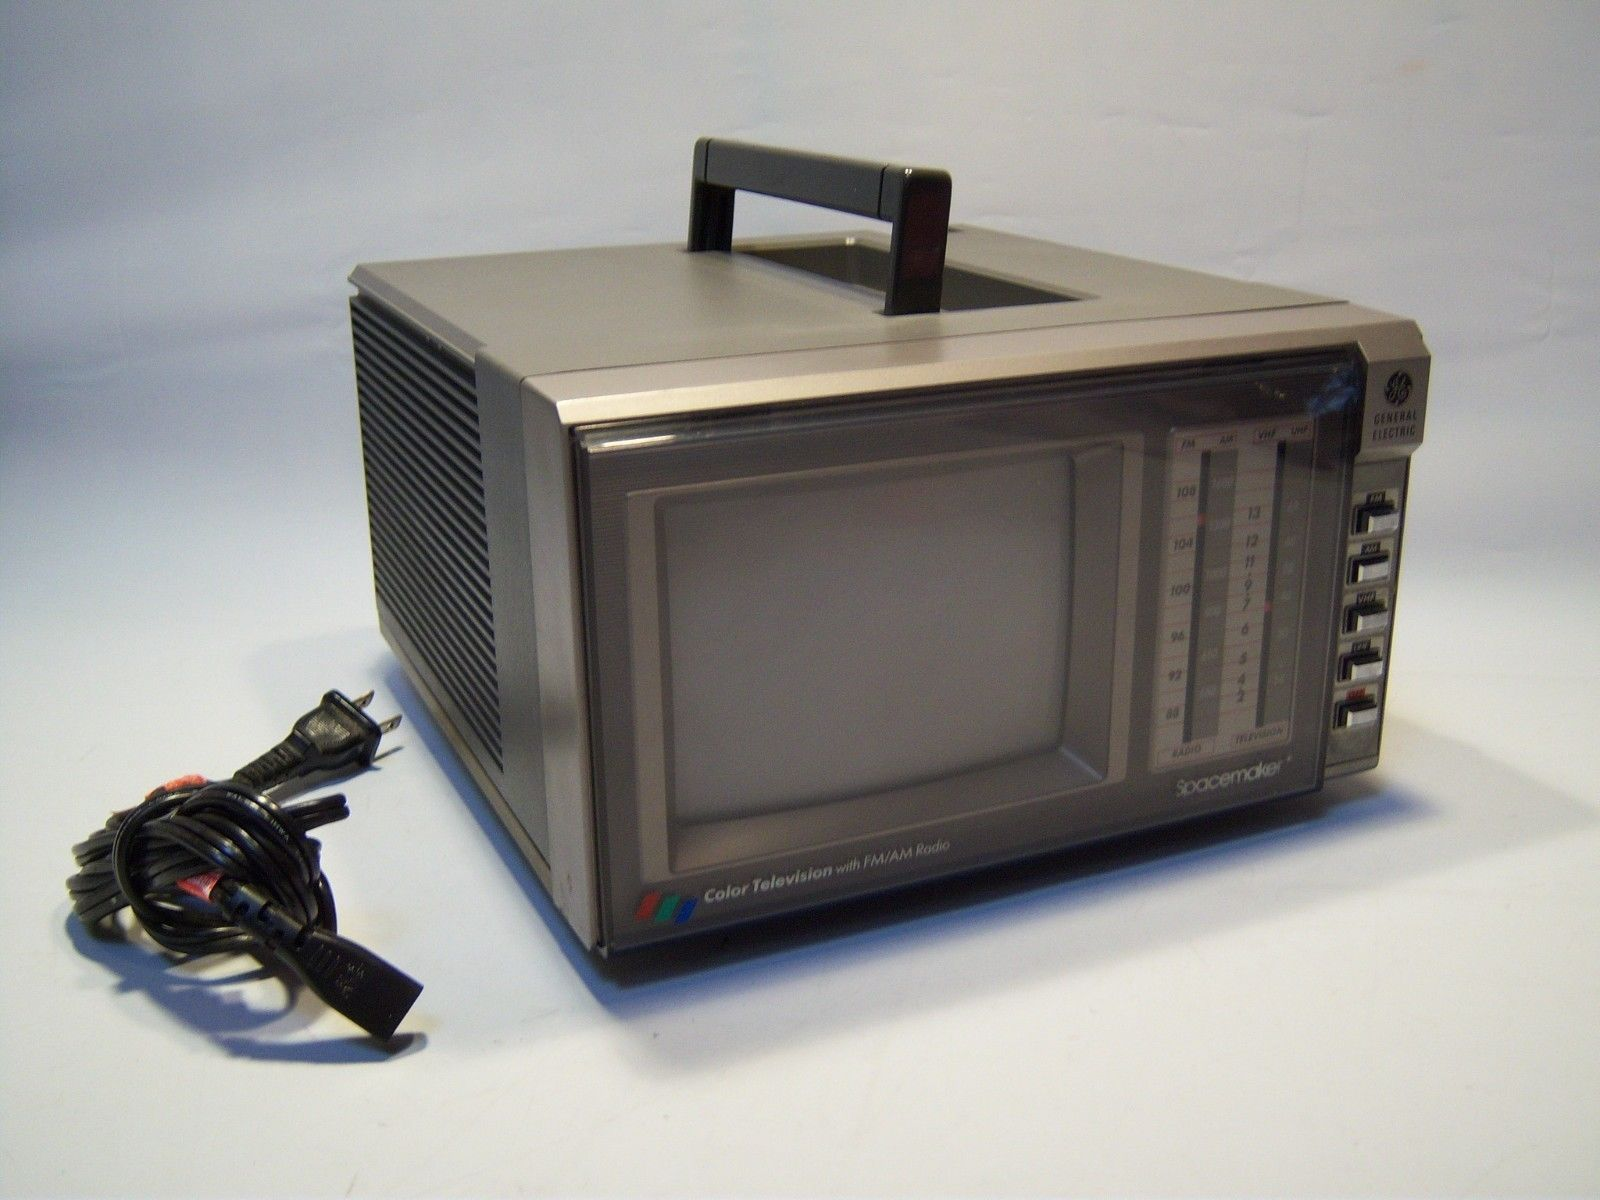 Vintage General Electric Space Maker Color Television With AM/FM Radio